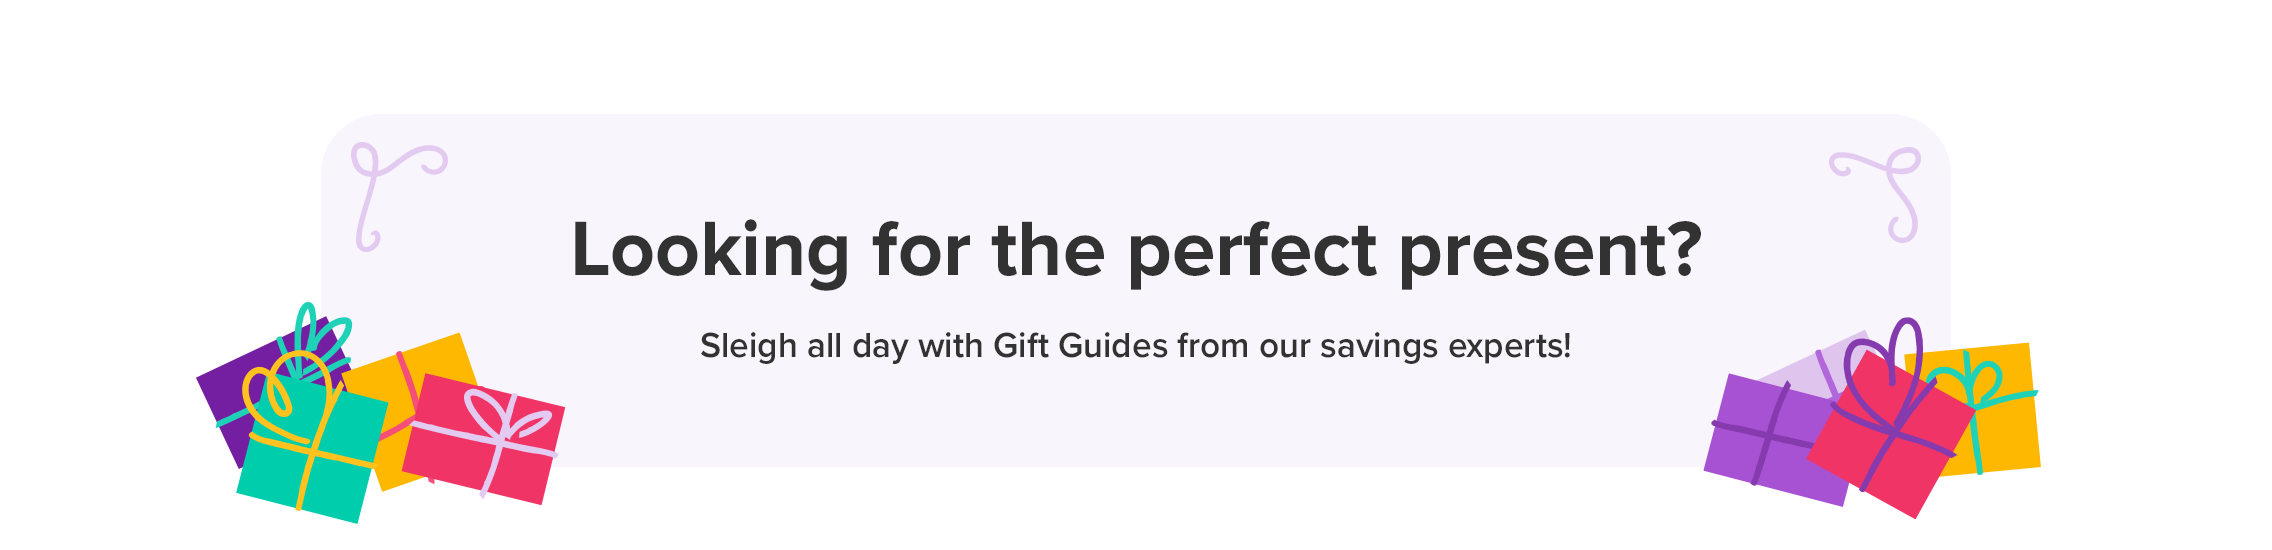 Looking for the perfect gift? Sleigh all day with Gift Guides from our savings experts!